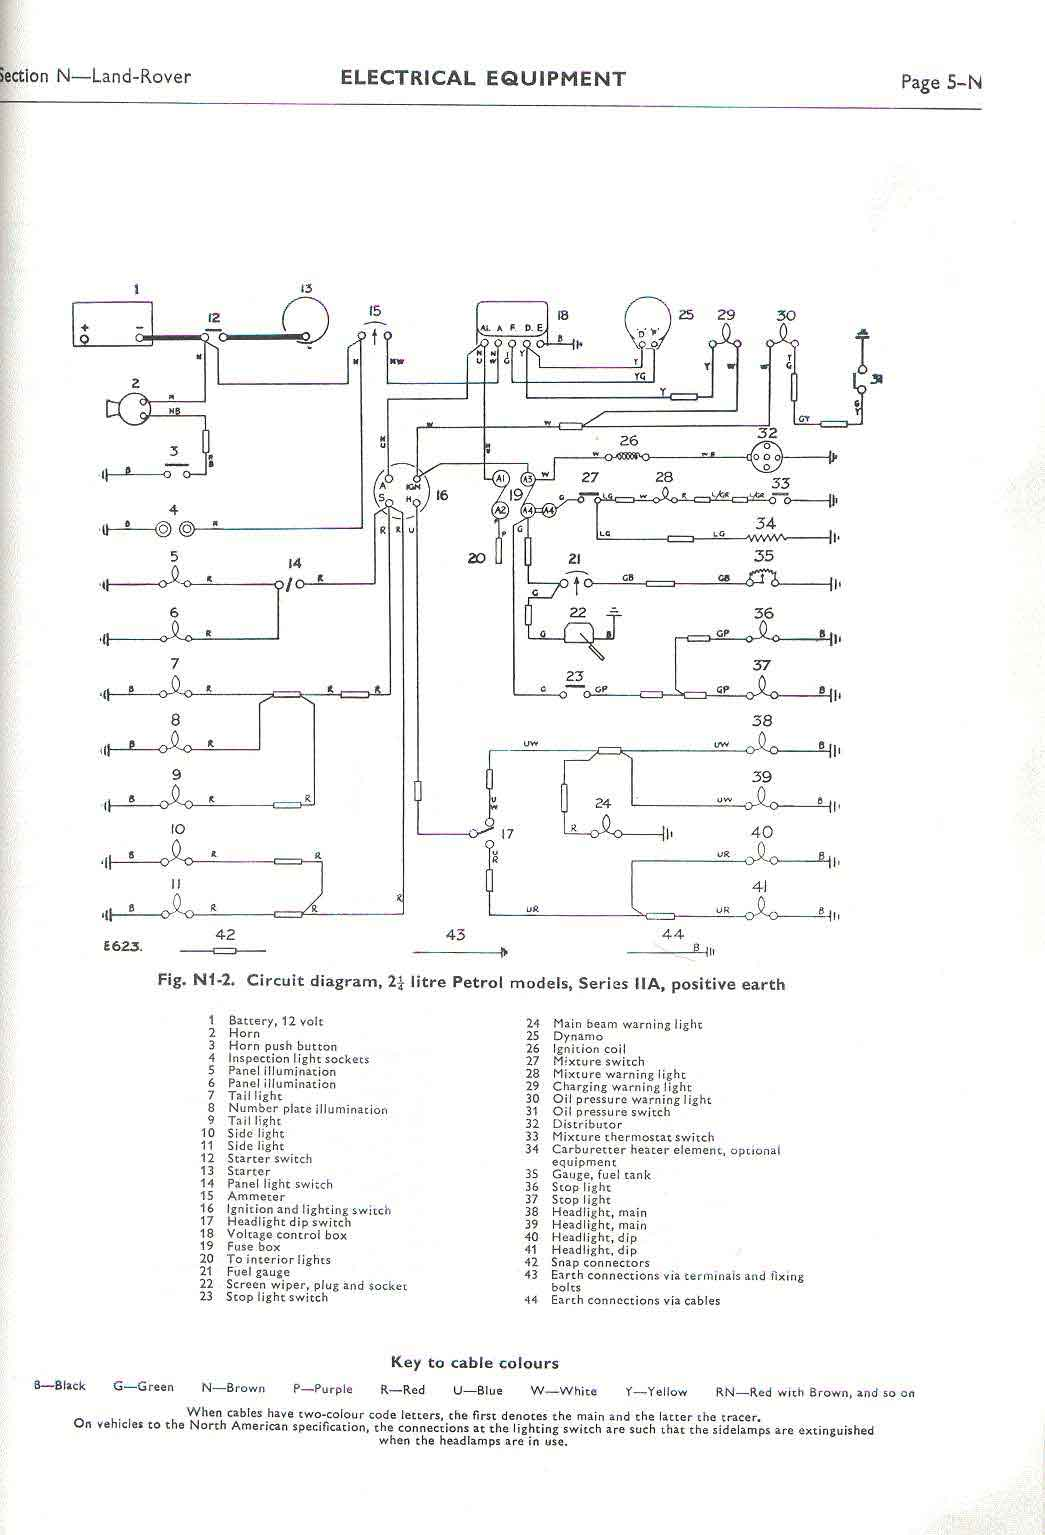 Land Rover FAQ - Repair & Maintenance - Series - Electrical ... on engine diagrams, led circuit diagrams, motor diagrams, gmc fuse box diagrams, electrical diagrams, lighting diagrams, pinout diagrams, switch diagrams, transformer diagrams, honda motorcycle repair diagrams, battery diagrams, troubleshooting diagrams, smart car diagrams, snatch block diagrams, hvac diagrams, series and parallel circuits diagrams, sincgars radio configurations diagrams, electronic circuit diagrams, friendship bracelet diagrams, internet of things diagrams,